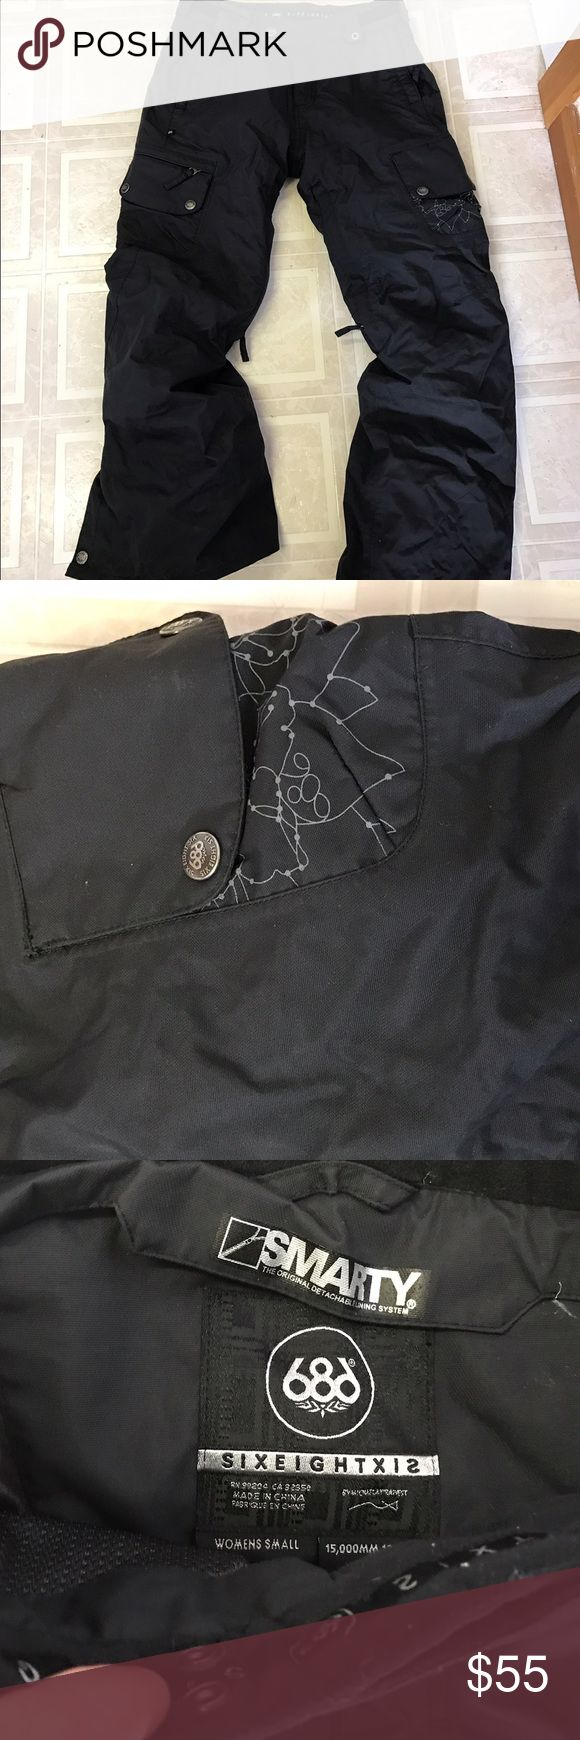 Black 686 Snowboarding Smarty Pants Super Warm EUC Black Snowboarding Pants, 686, EEUC. Also comes with original 2nd pair of fleece pants underneath. Used only once or twice before I was pregnant and now they don't fit anymore. Size small. Fantastic pants from a reliable brand. Constellation design on pocket 686 Pants